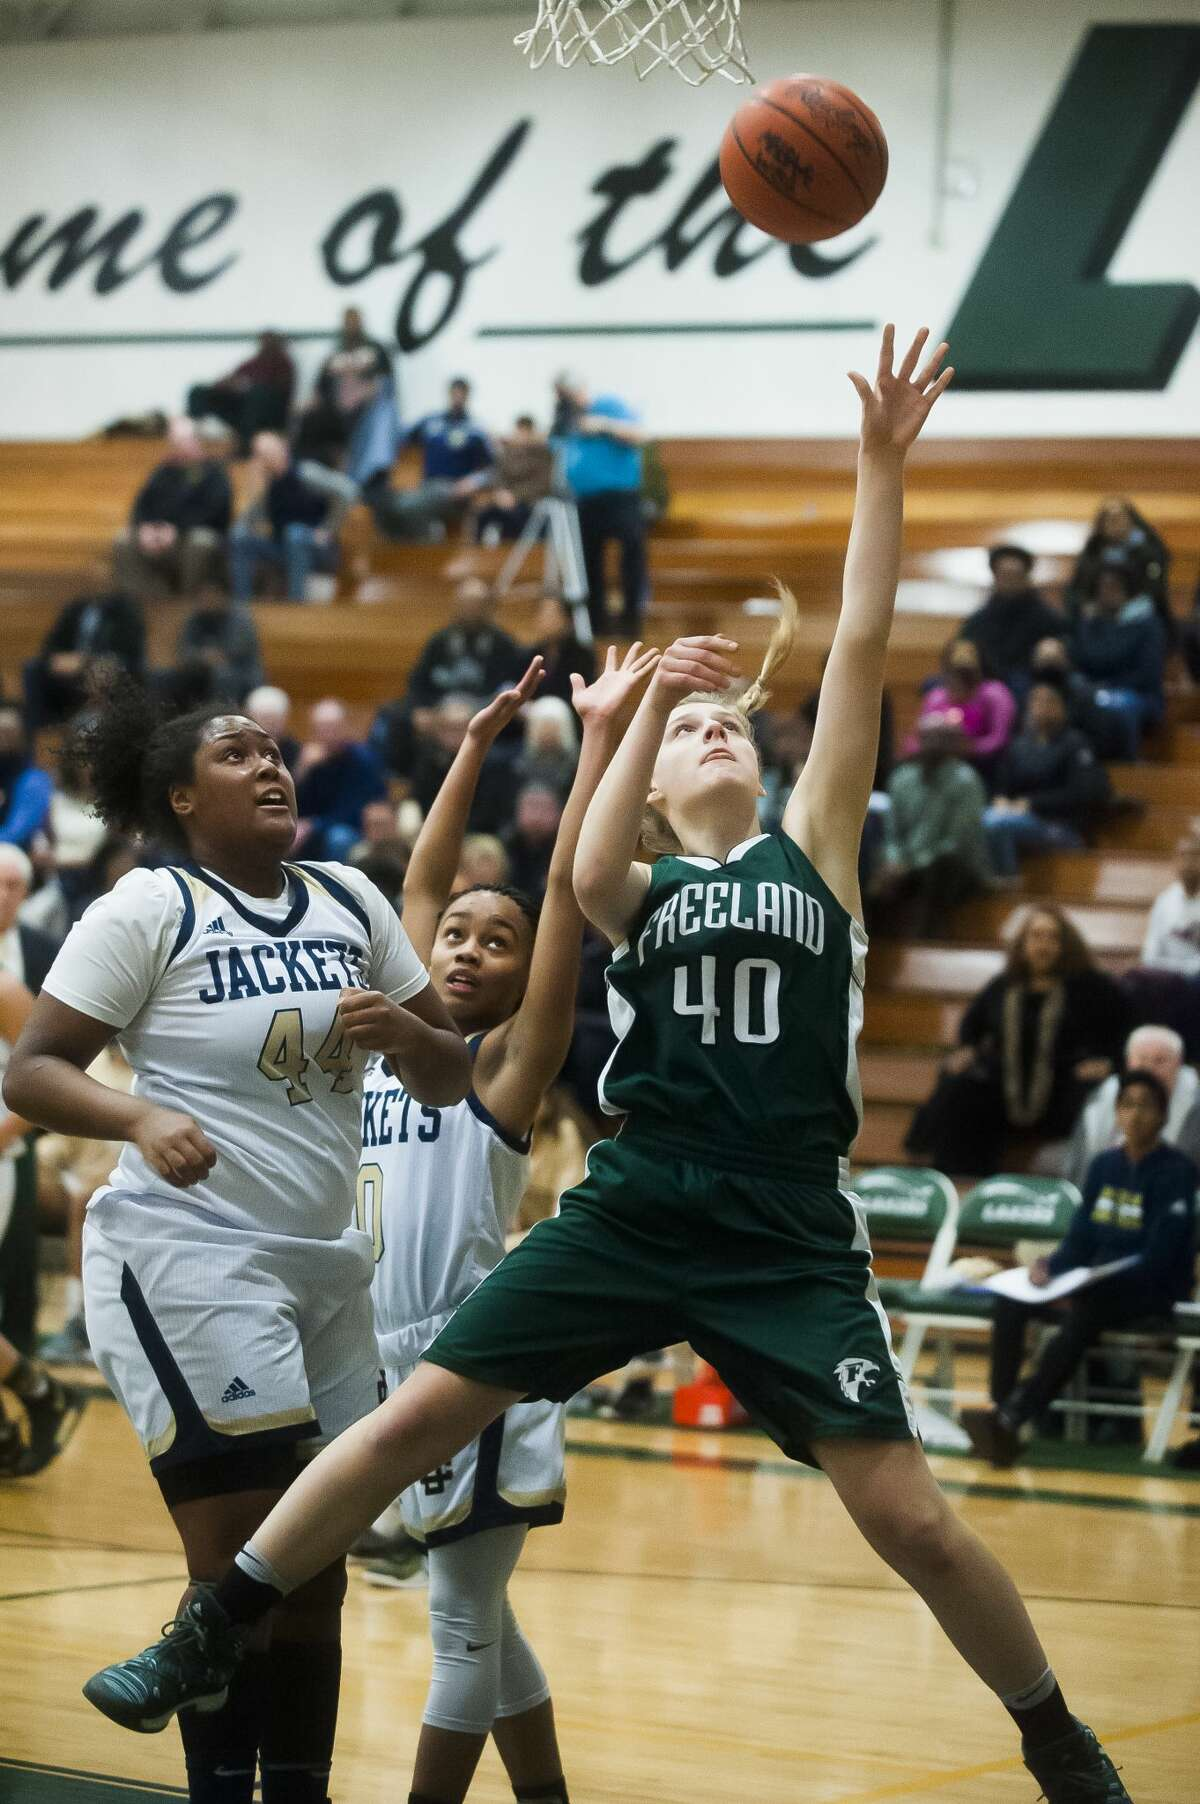 Freeland sophomore Kadyn Blanchard takes a shot while Detroit Country Day senior Maxine Moore guards during their Class B state quarterfinals game on Tuesday, March 13, 2018 at West Bloomfield High School. (Katy Kildee/kkildee@mdn.net)